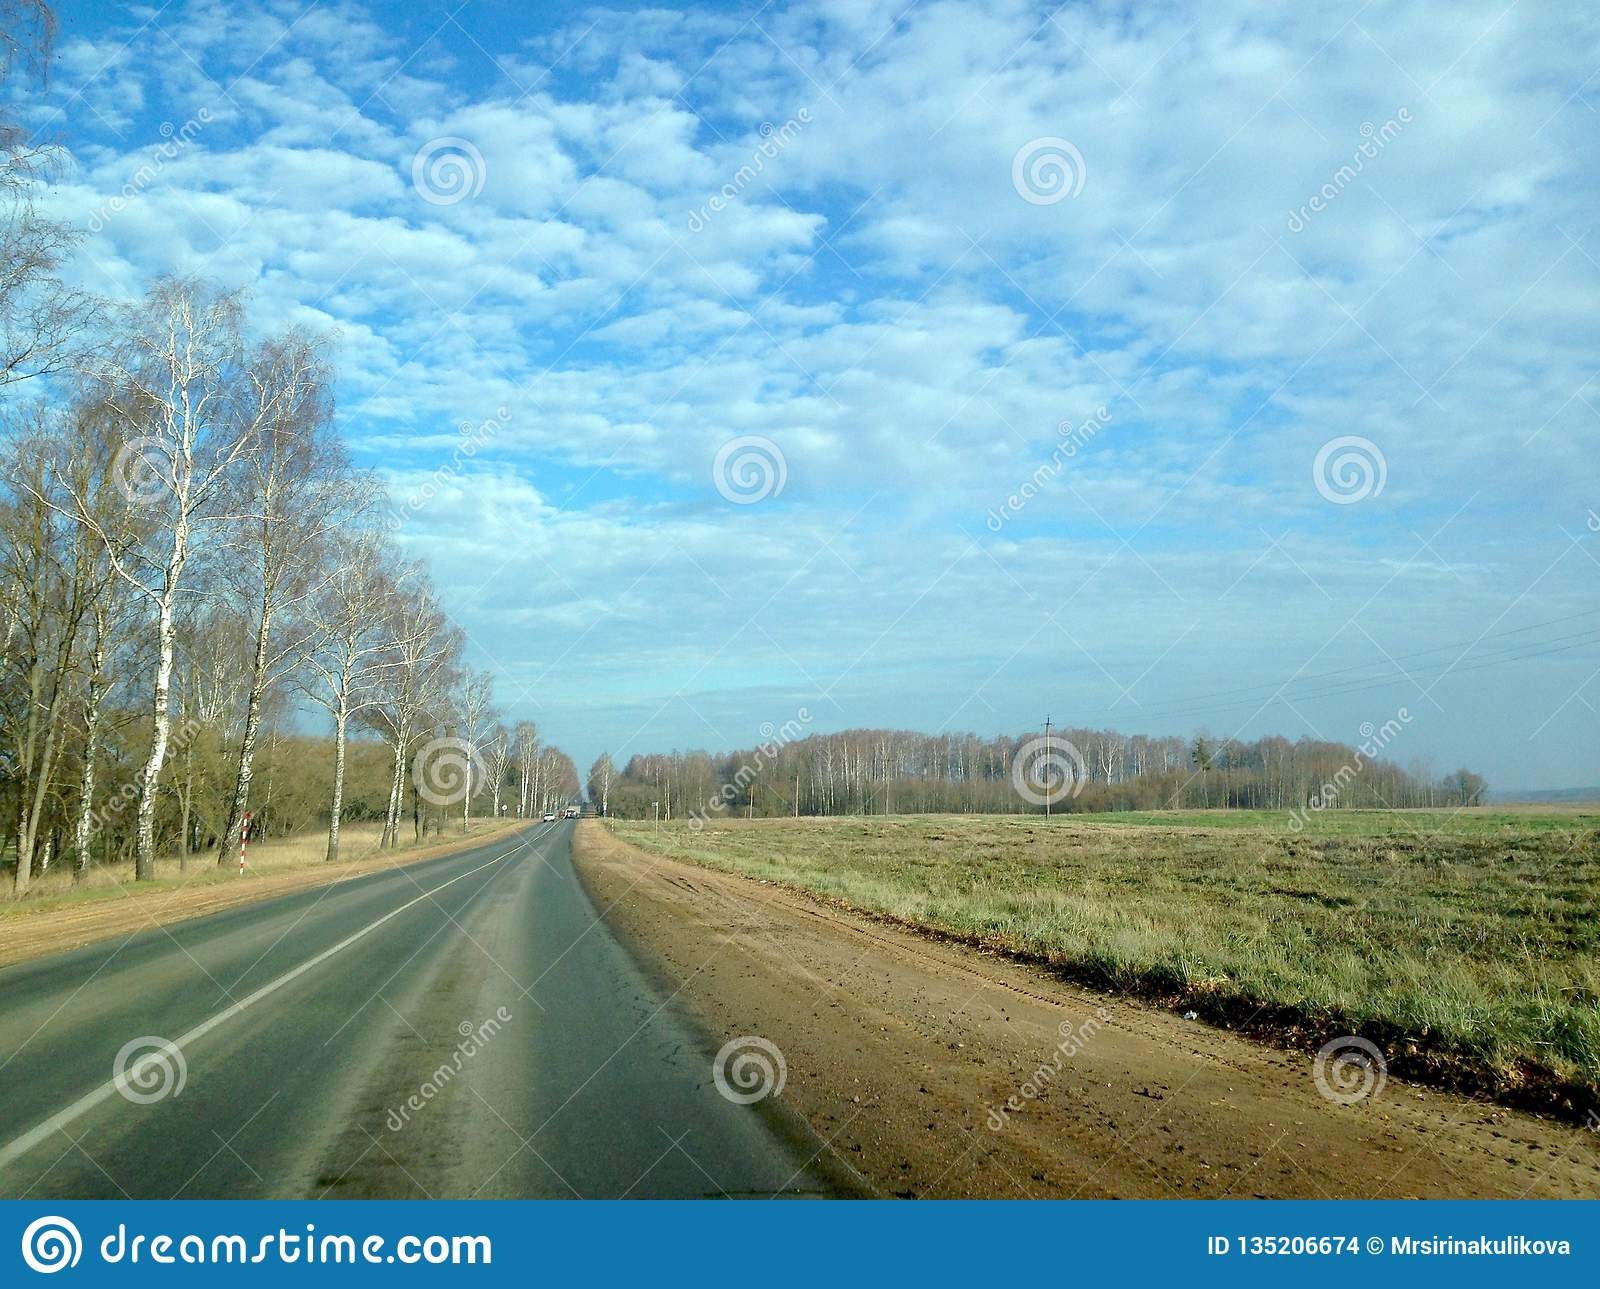 Asphalt road in retro style through the fields and forests against the blue sky with lush clouds